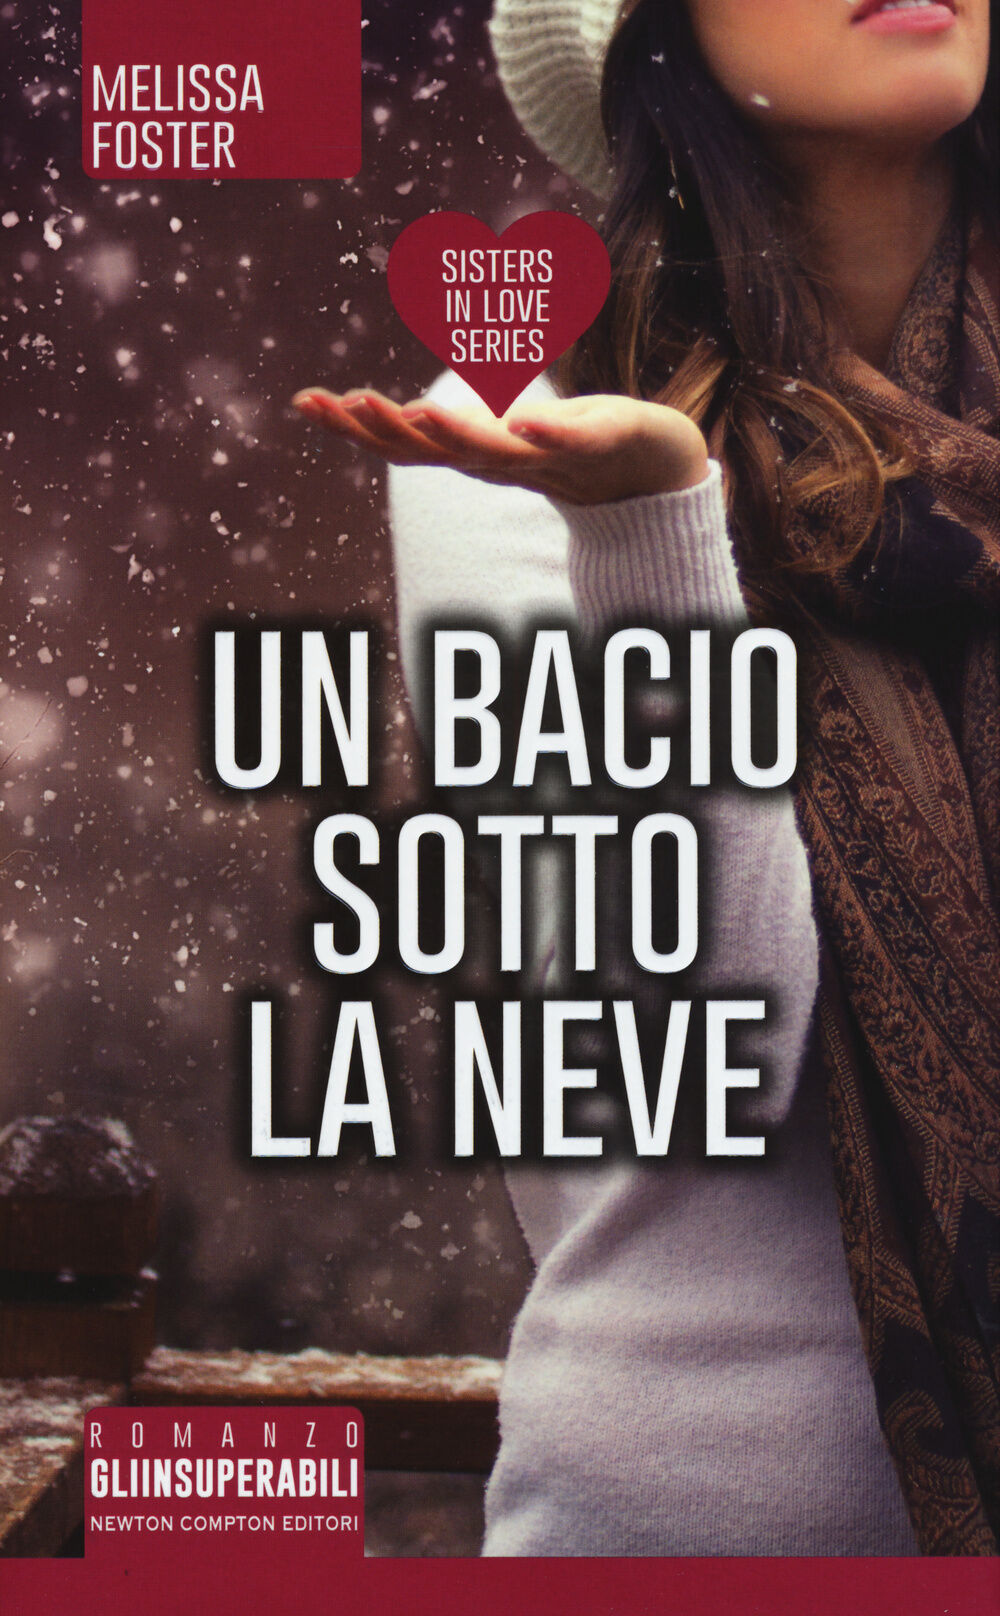 Un bacio sotto la neve. Sisters in love series